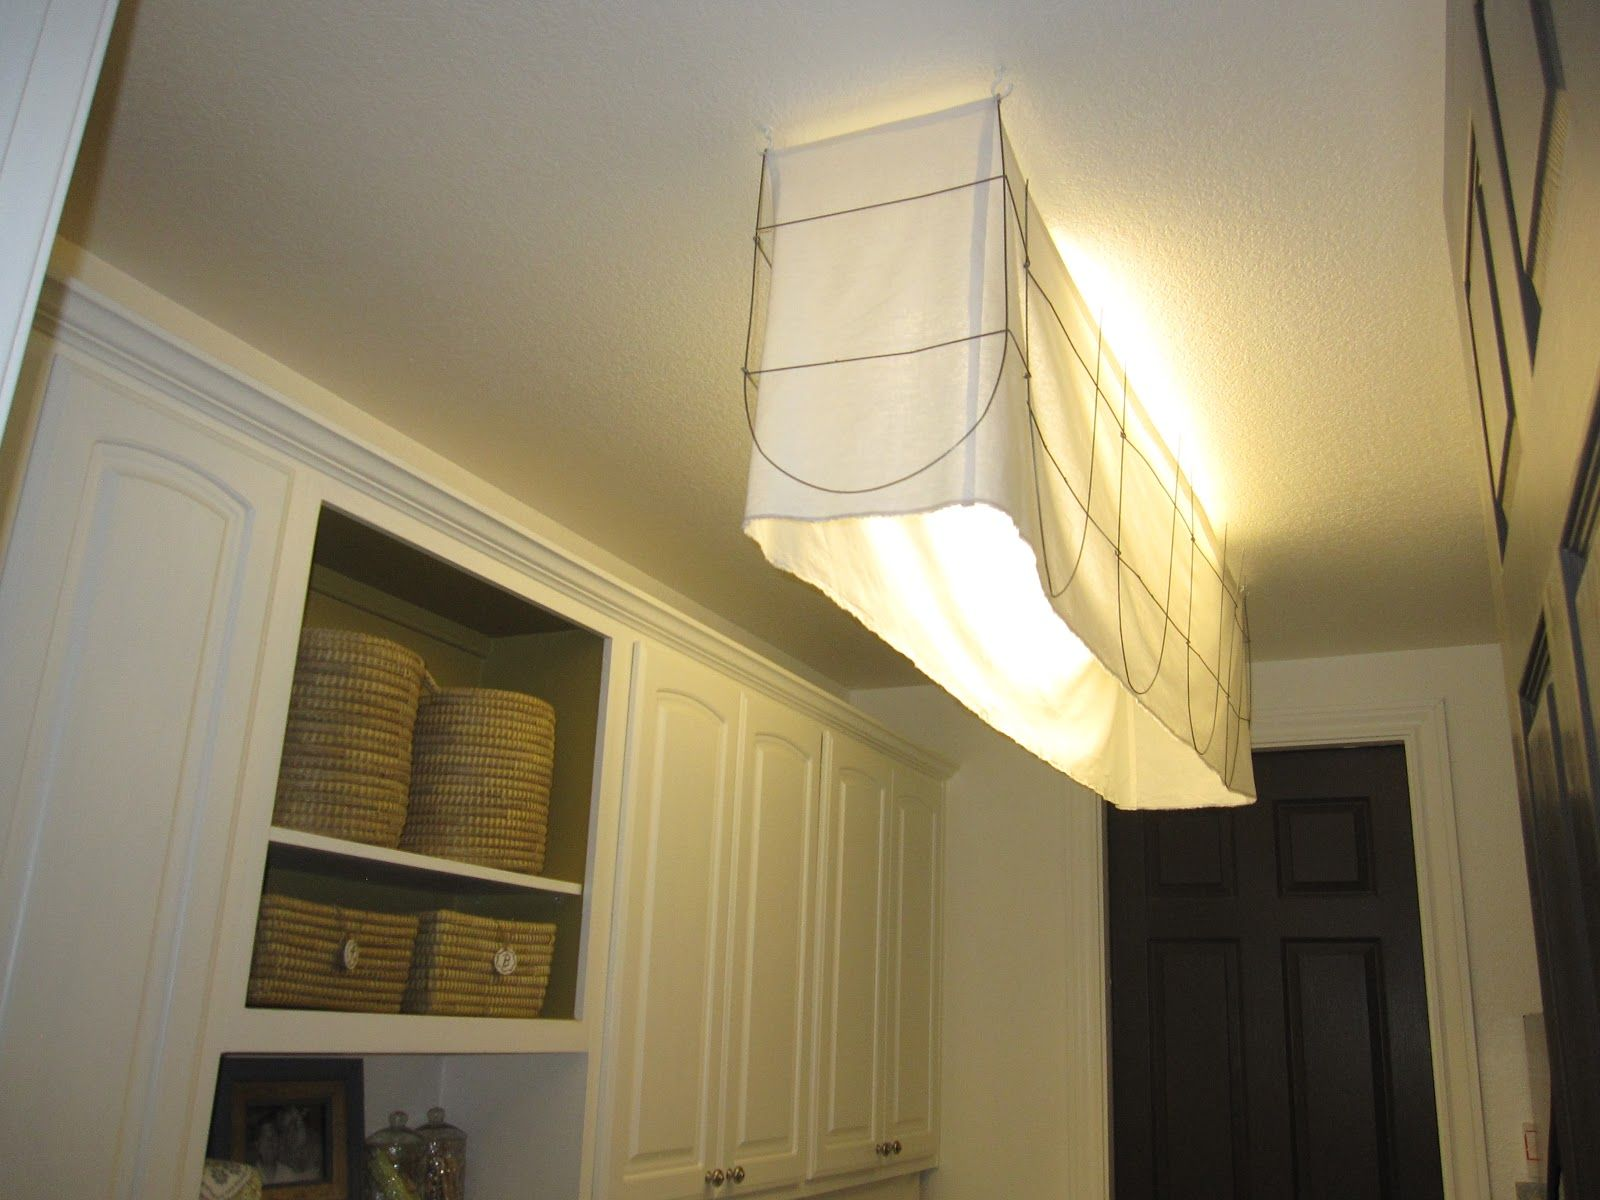 How to cover an ungly fluorescent light fixture ...